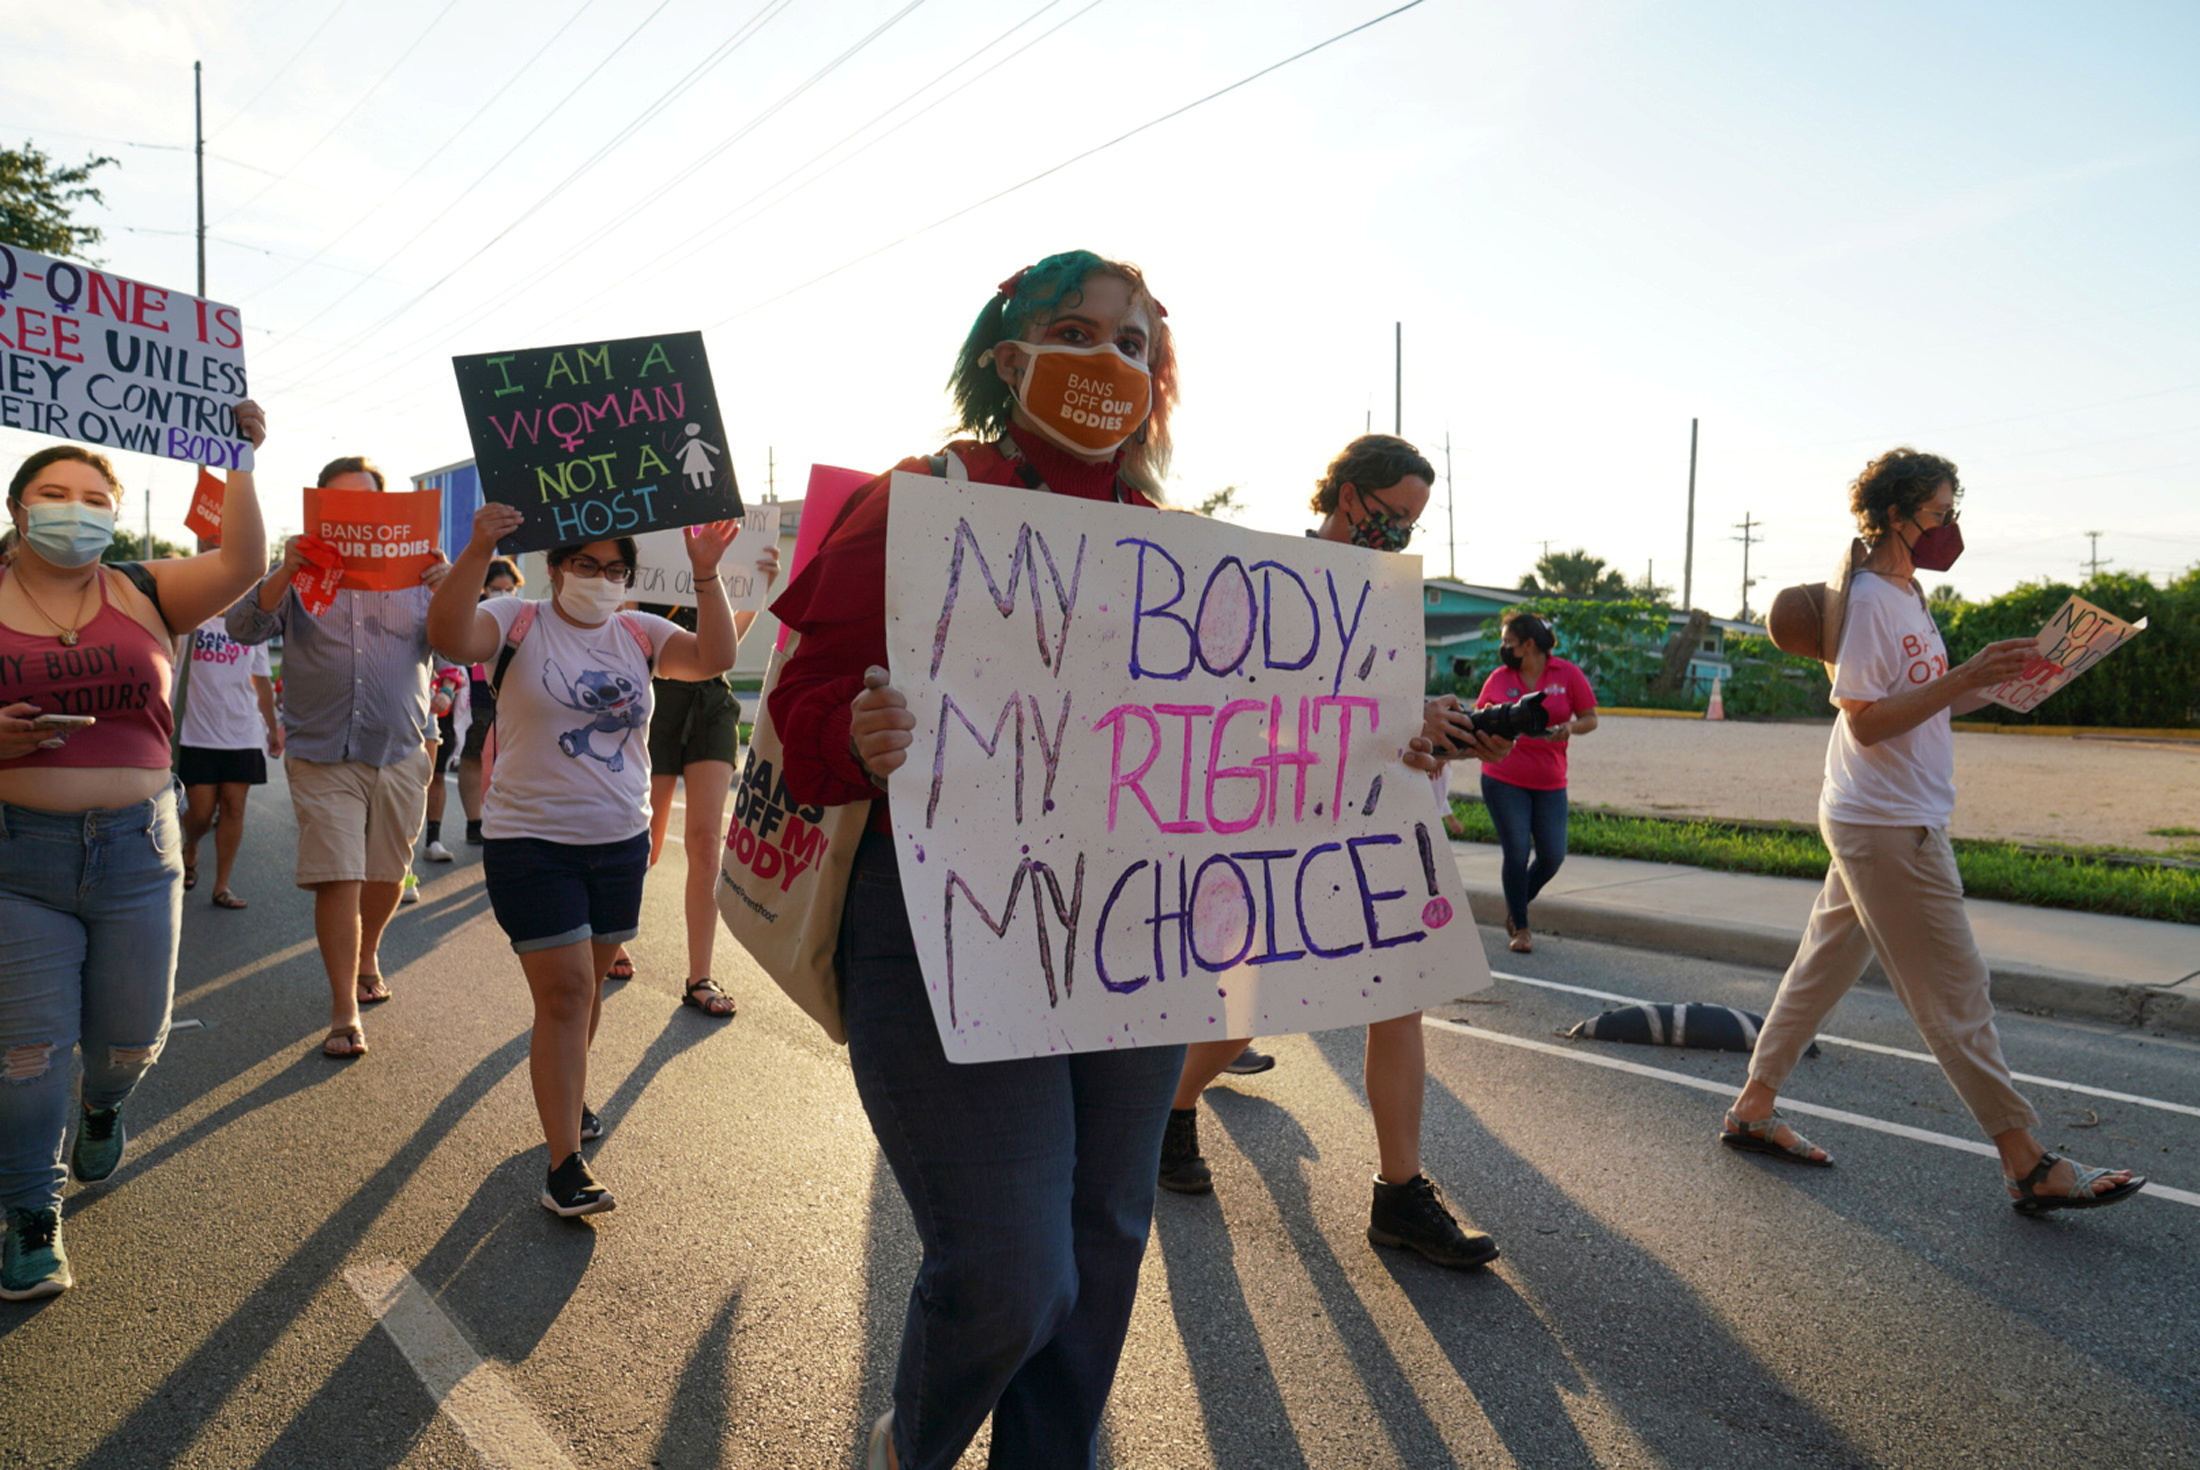 Supporters of reproductive choice take part in the nationwide Women's March, held after Texas rolled out a near-total ban on abortion procedures and access to abortion-inducing medications, in Brownsville, Texas, U.S. October 2, 2021. REUTERS/Veronica Cardenas